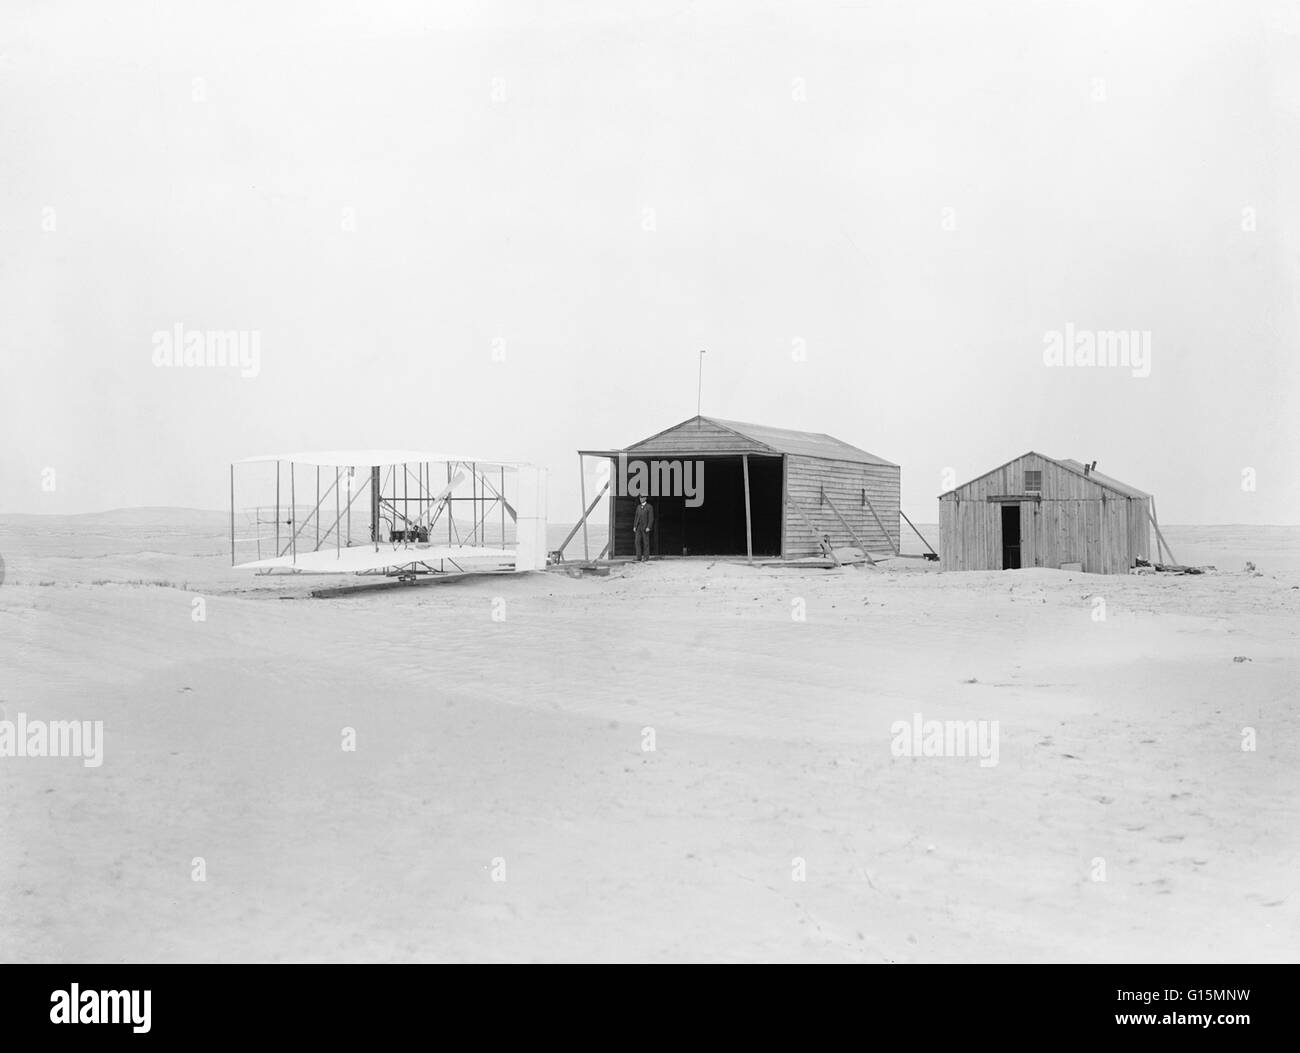 First Flight Kitty Hawk 1903 pertaining to wilbur or orville wright standing near the wright flyer, in